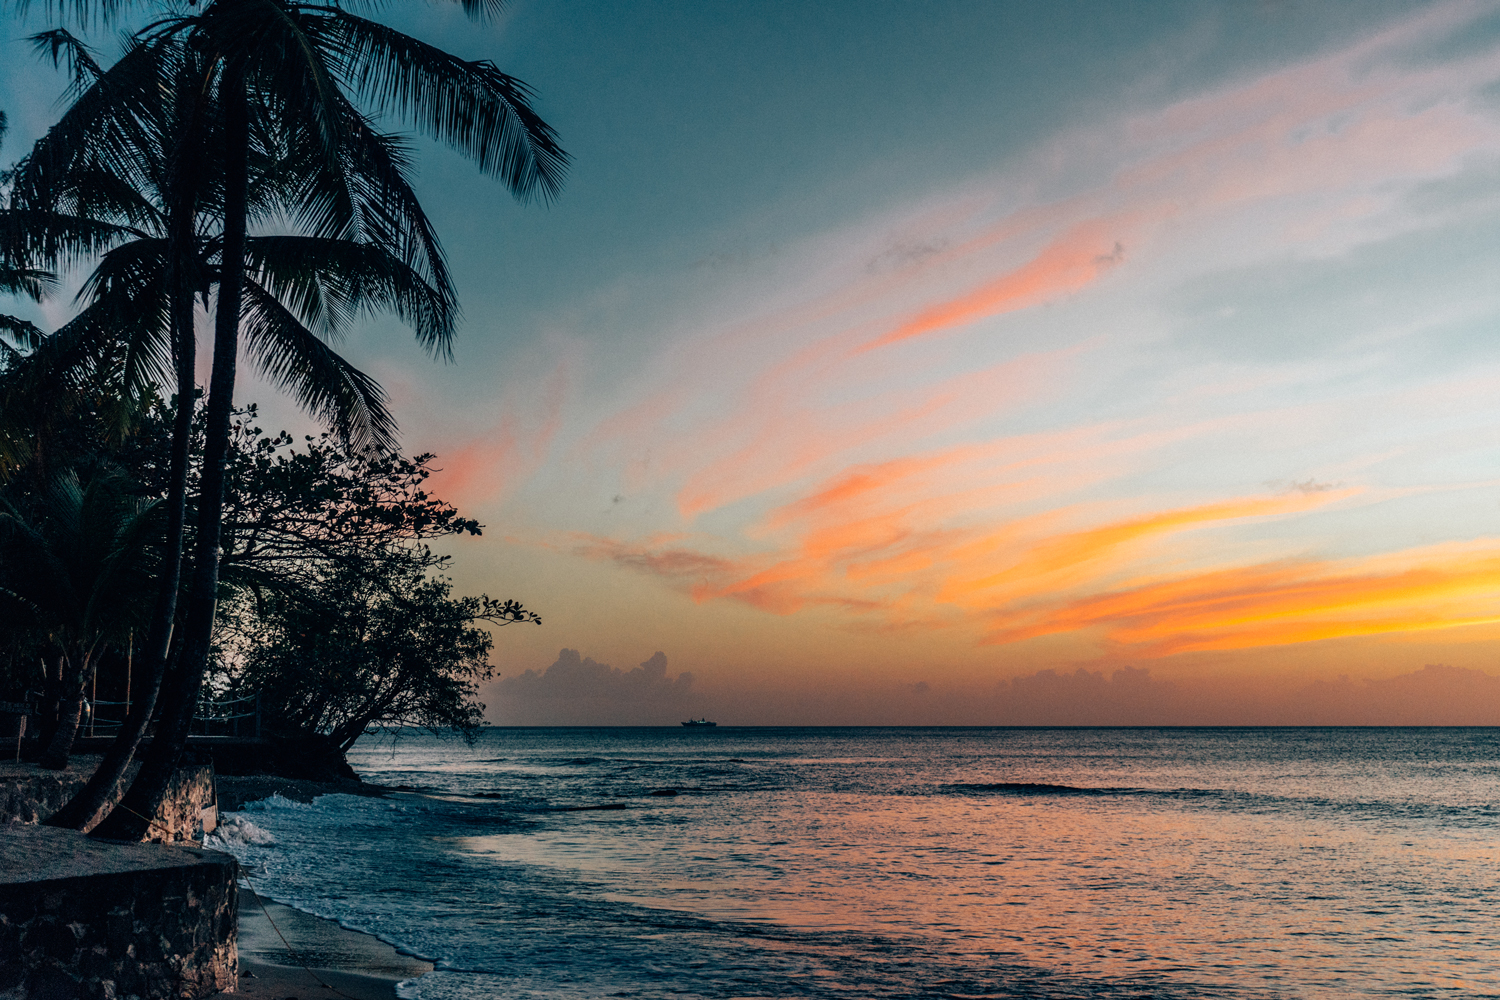 Sunset at East Winds Resort, St. Lucia